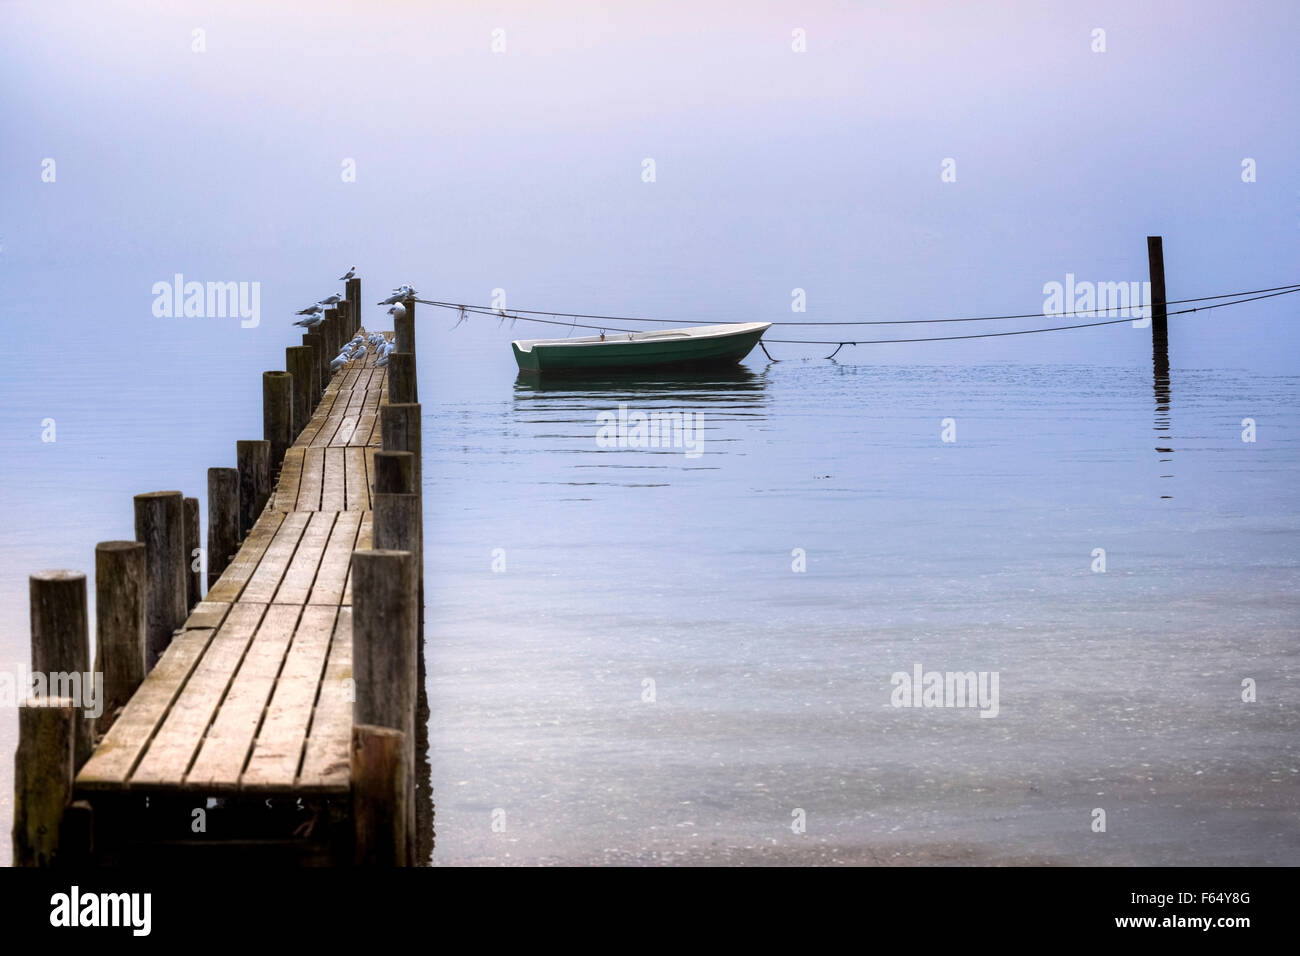 an old wooden jetty with seagulls and a rowing boat - Stock Image